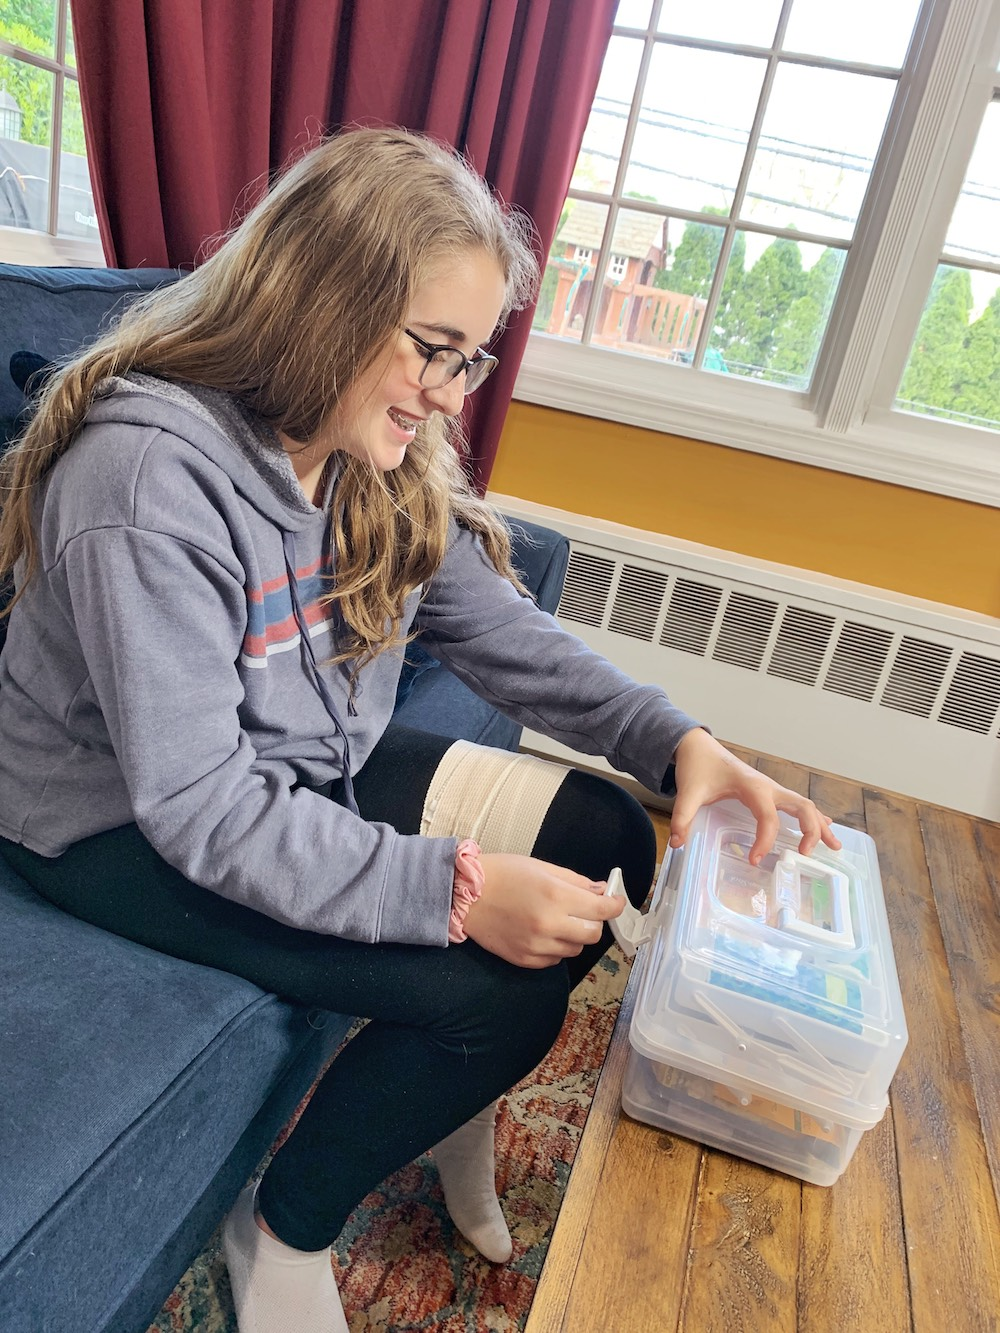 Girl closing The College Student First Aid Kit